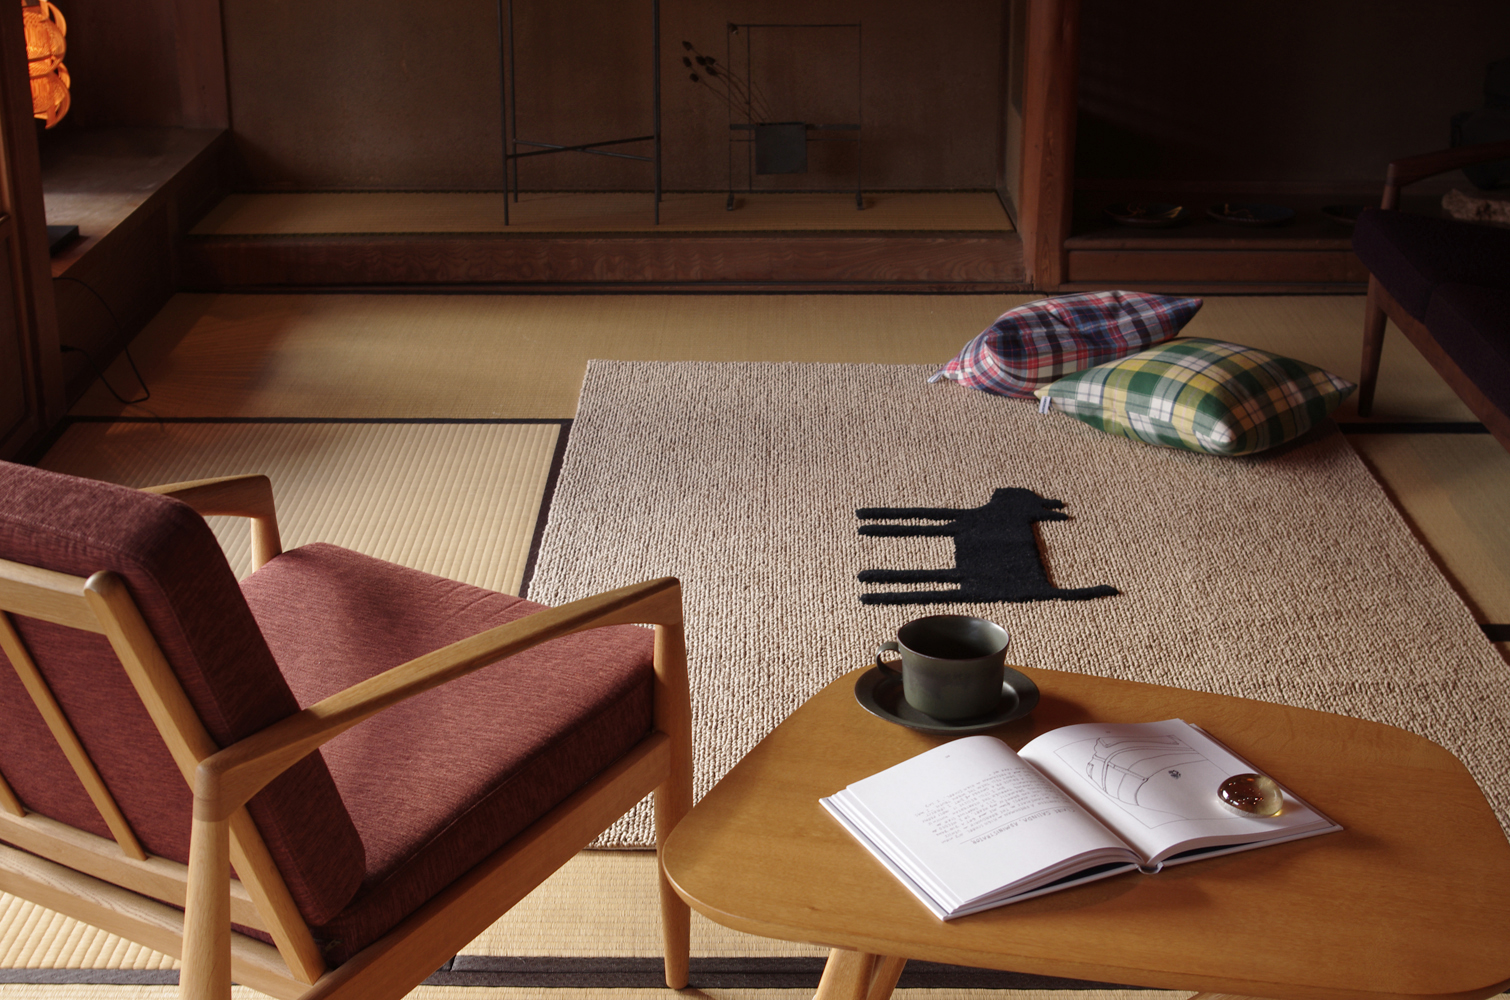 Fstyle rugmat HOUSE-7